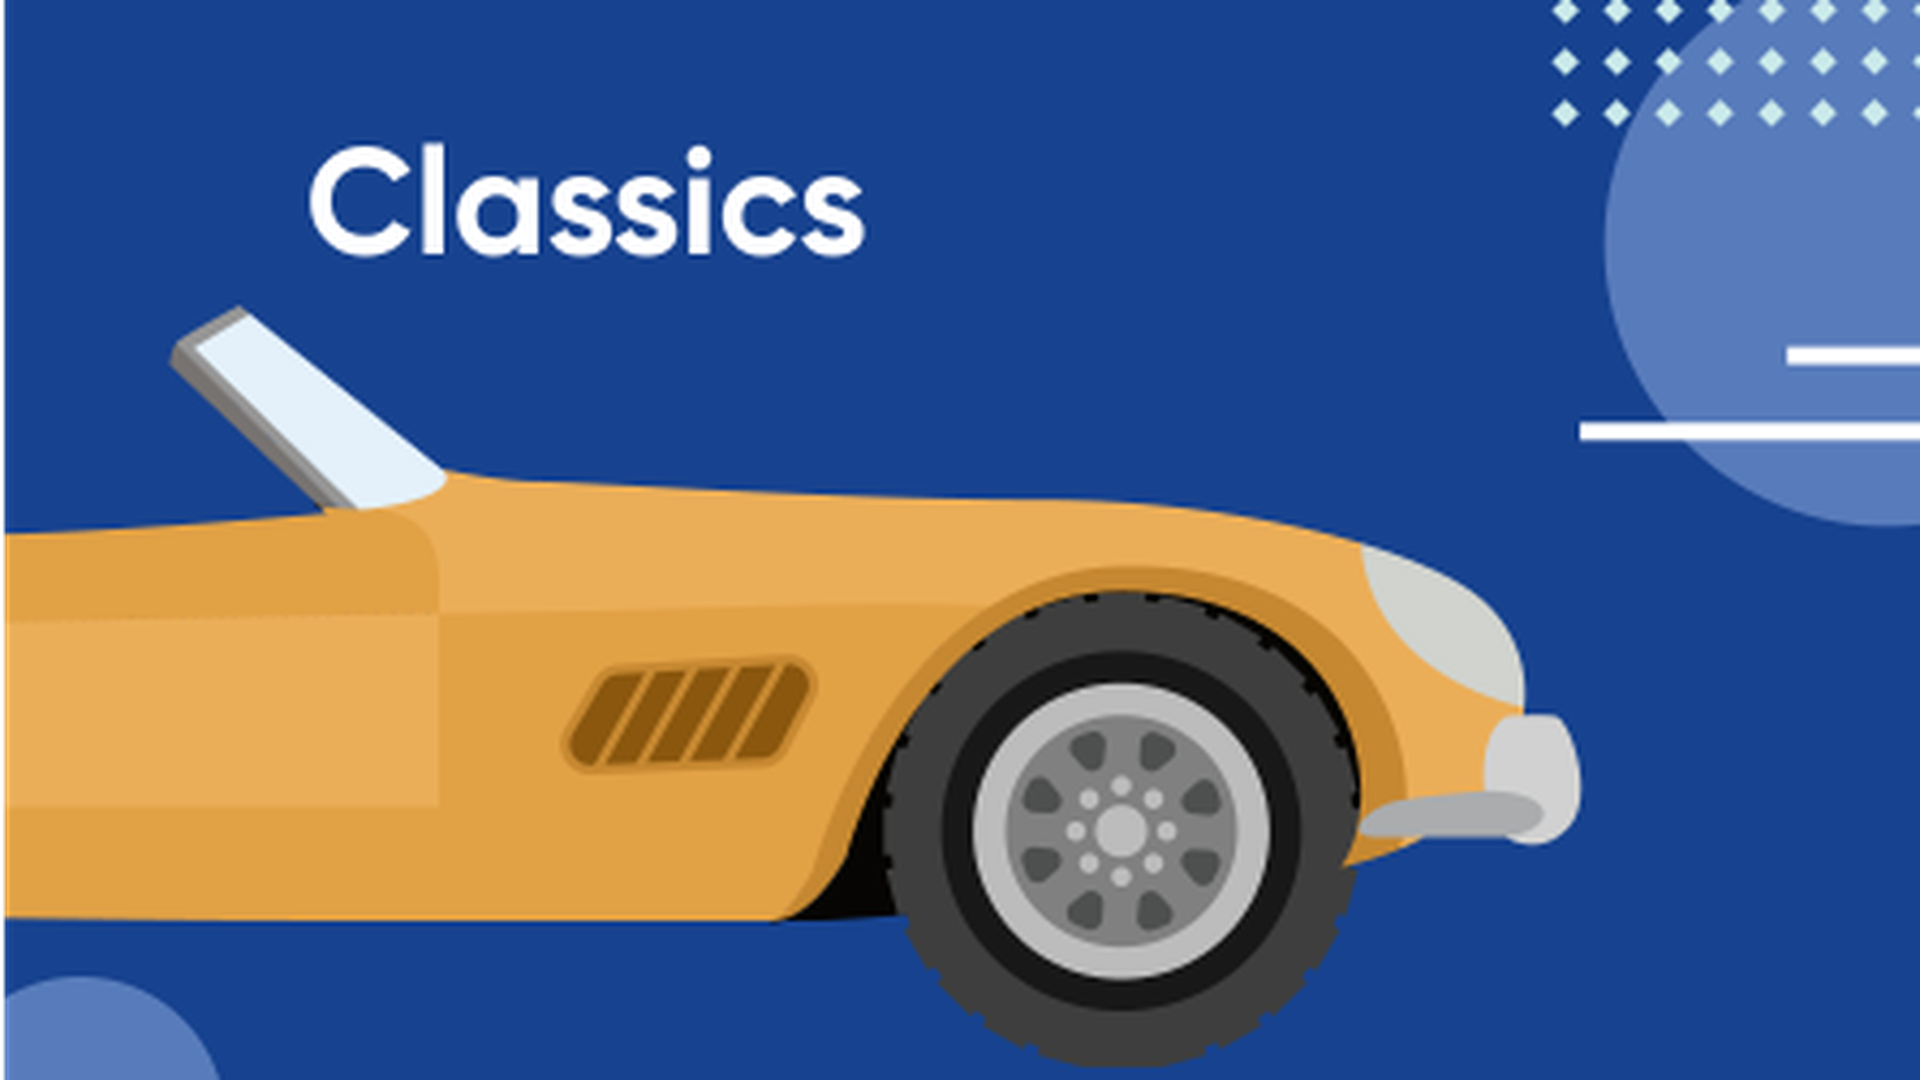 Featured Image of Class A - Classics